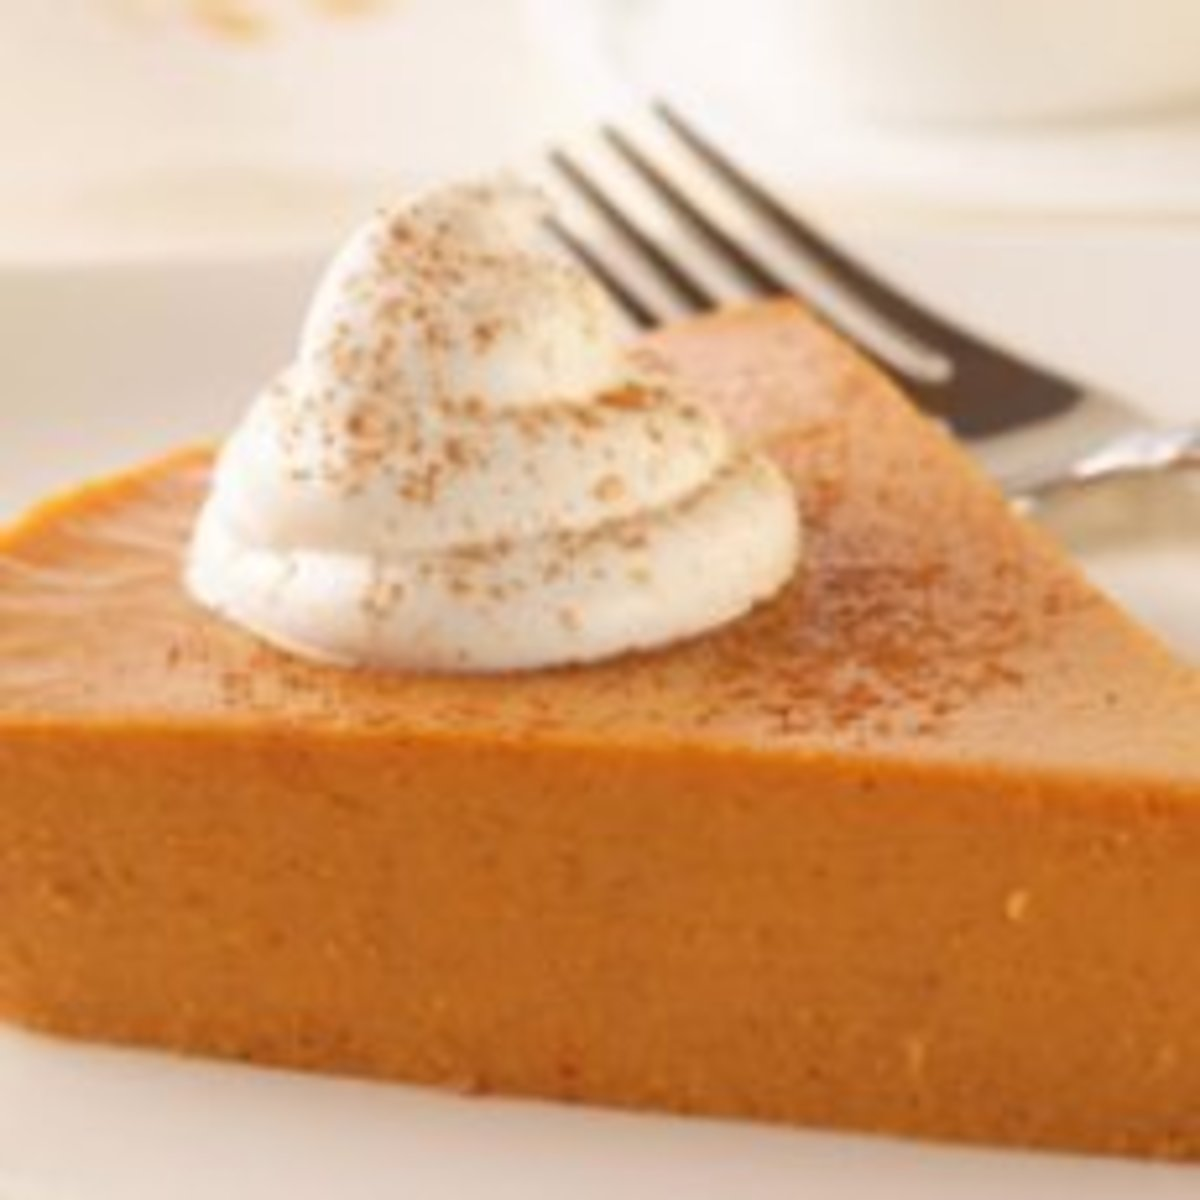 This pie has no crust, saving both preparation time and calories.